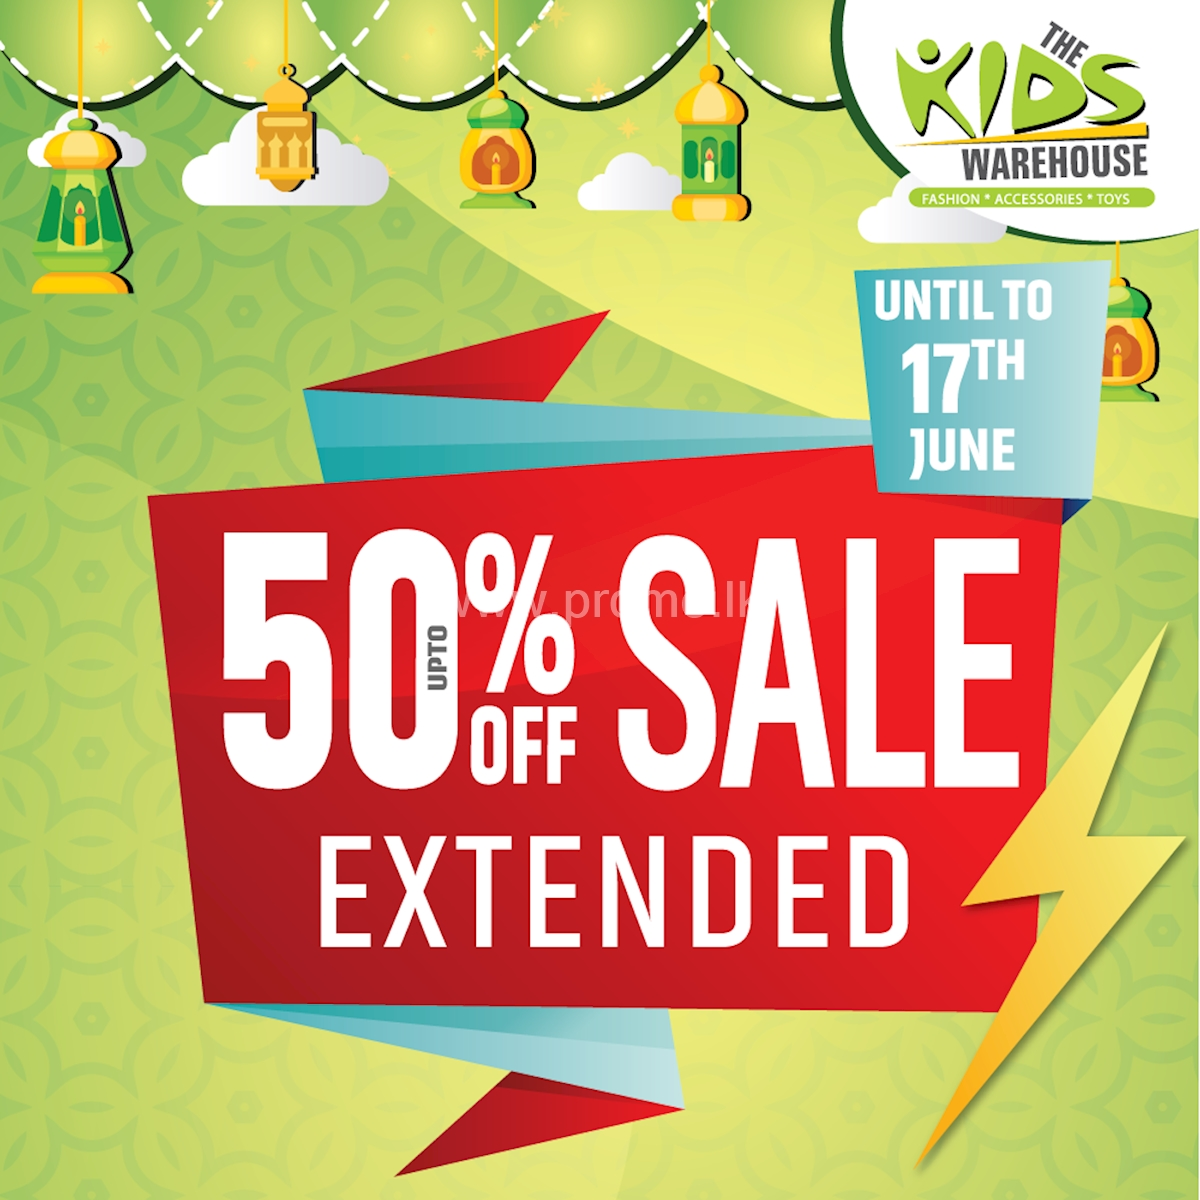 Extended Offer for upto 50% Off at Kids Warehouse